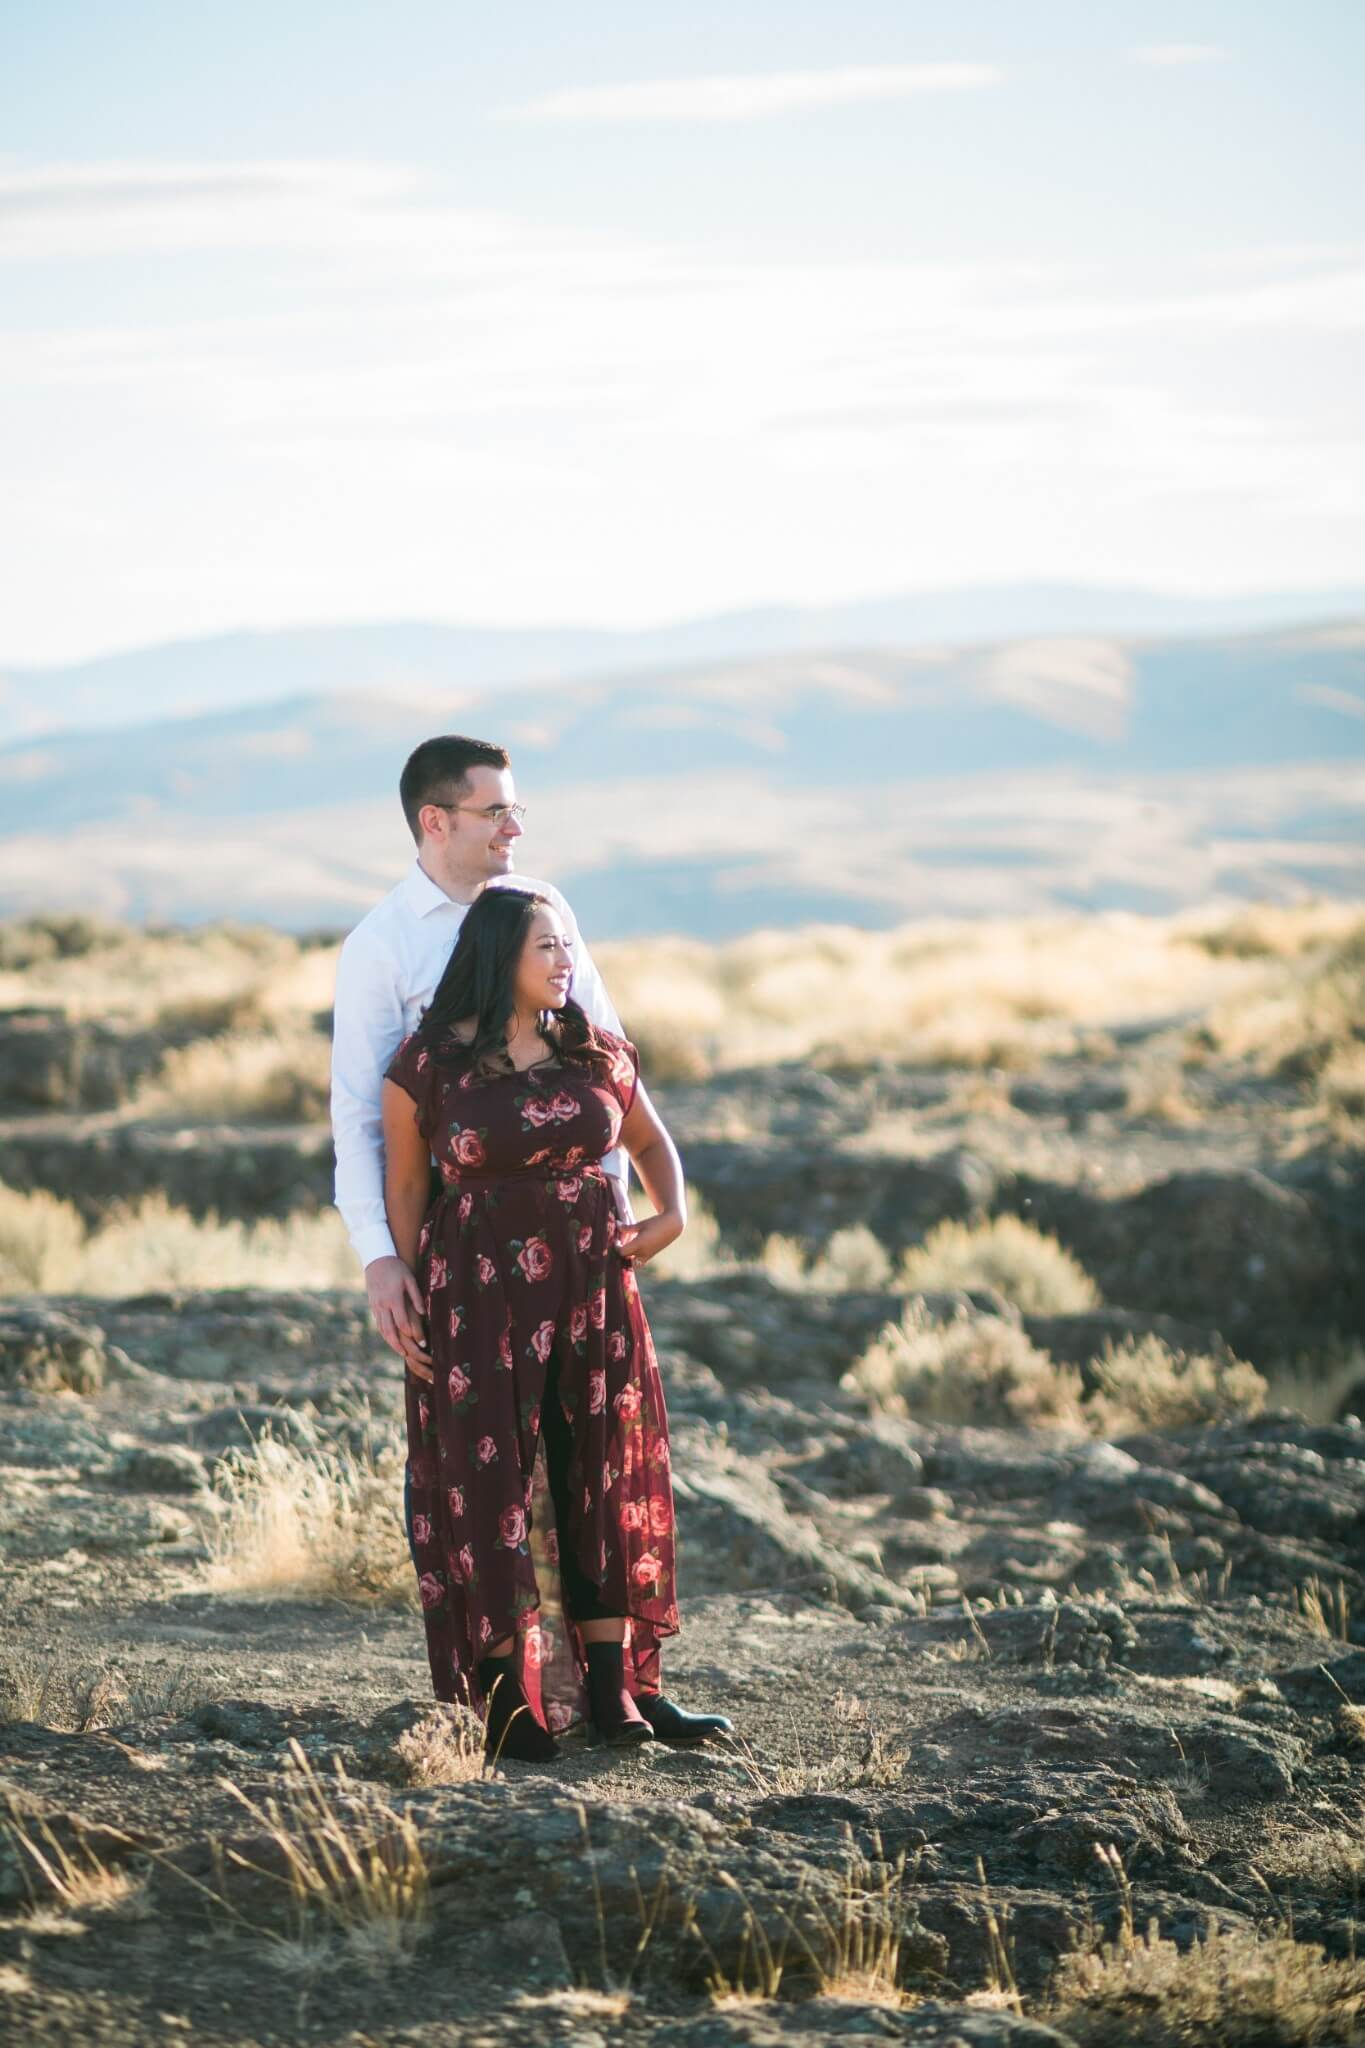 Lesly & Michael Vantage Engagement by Bill Weisgerber Spokane Photographer (7 of 71).jpg